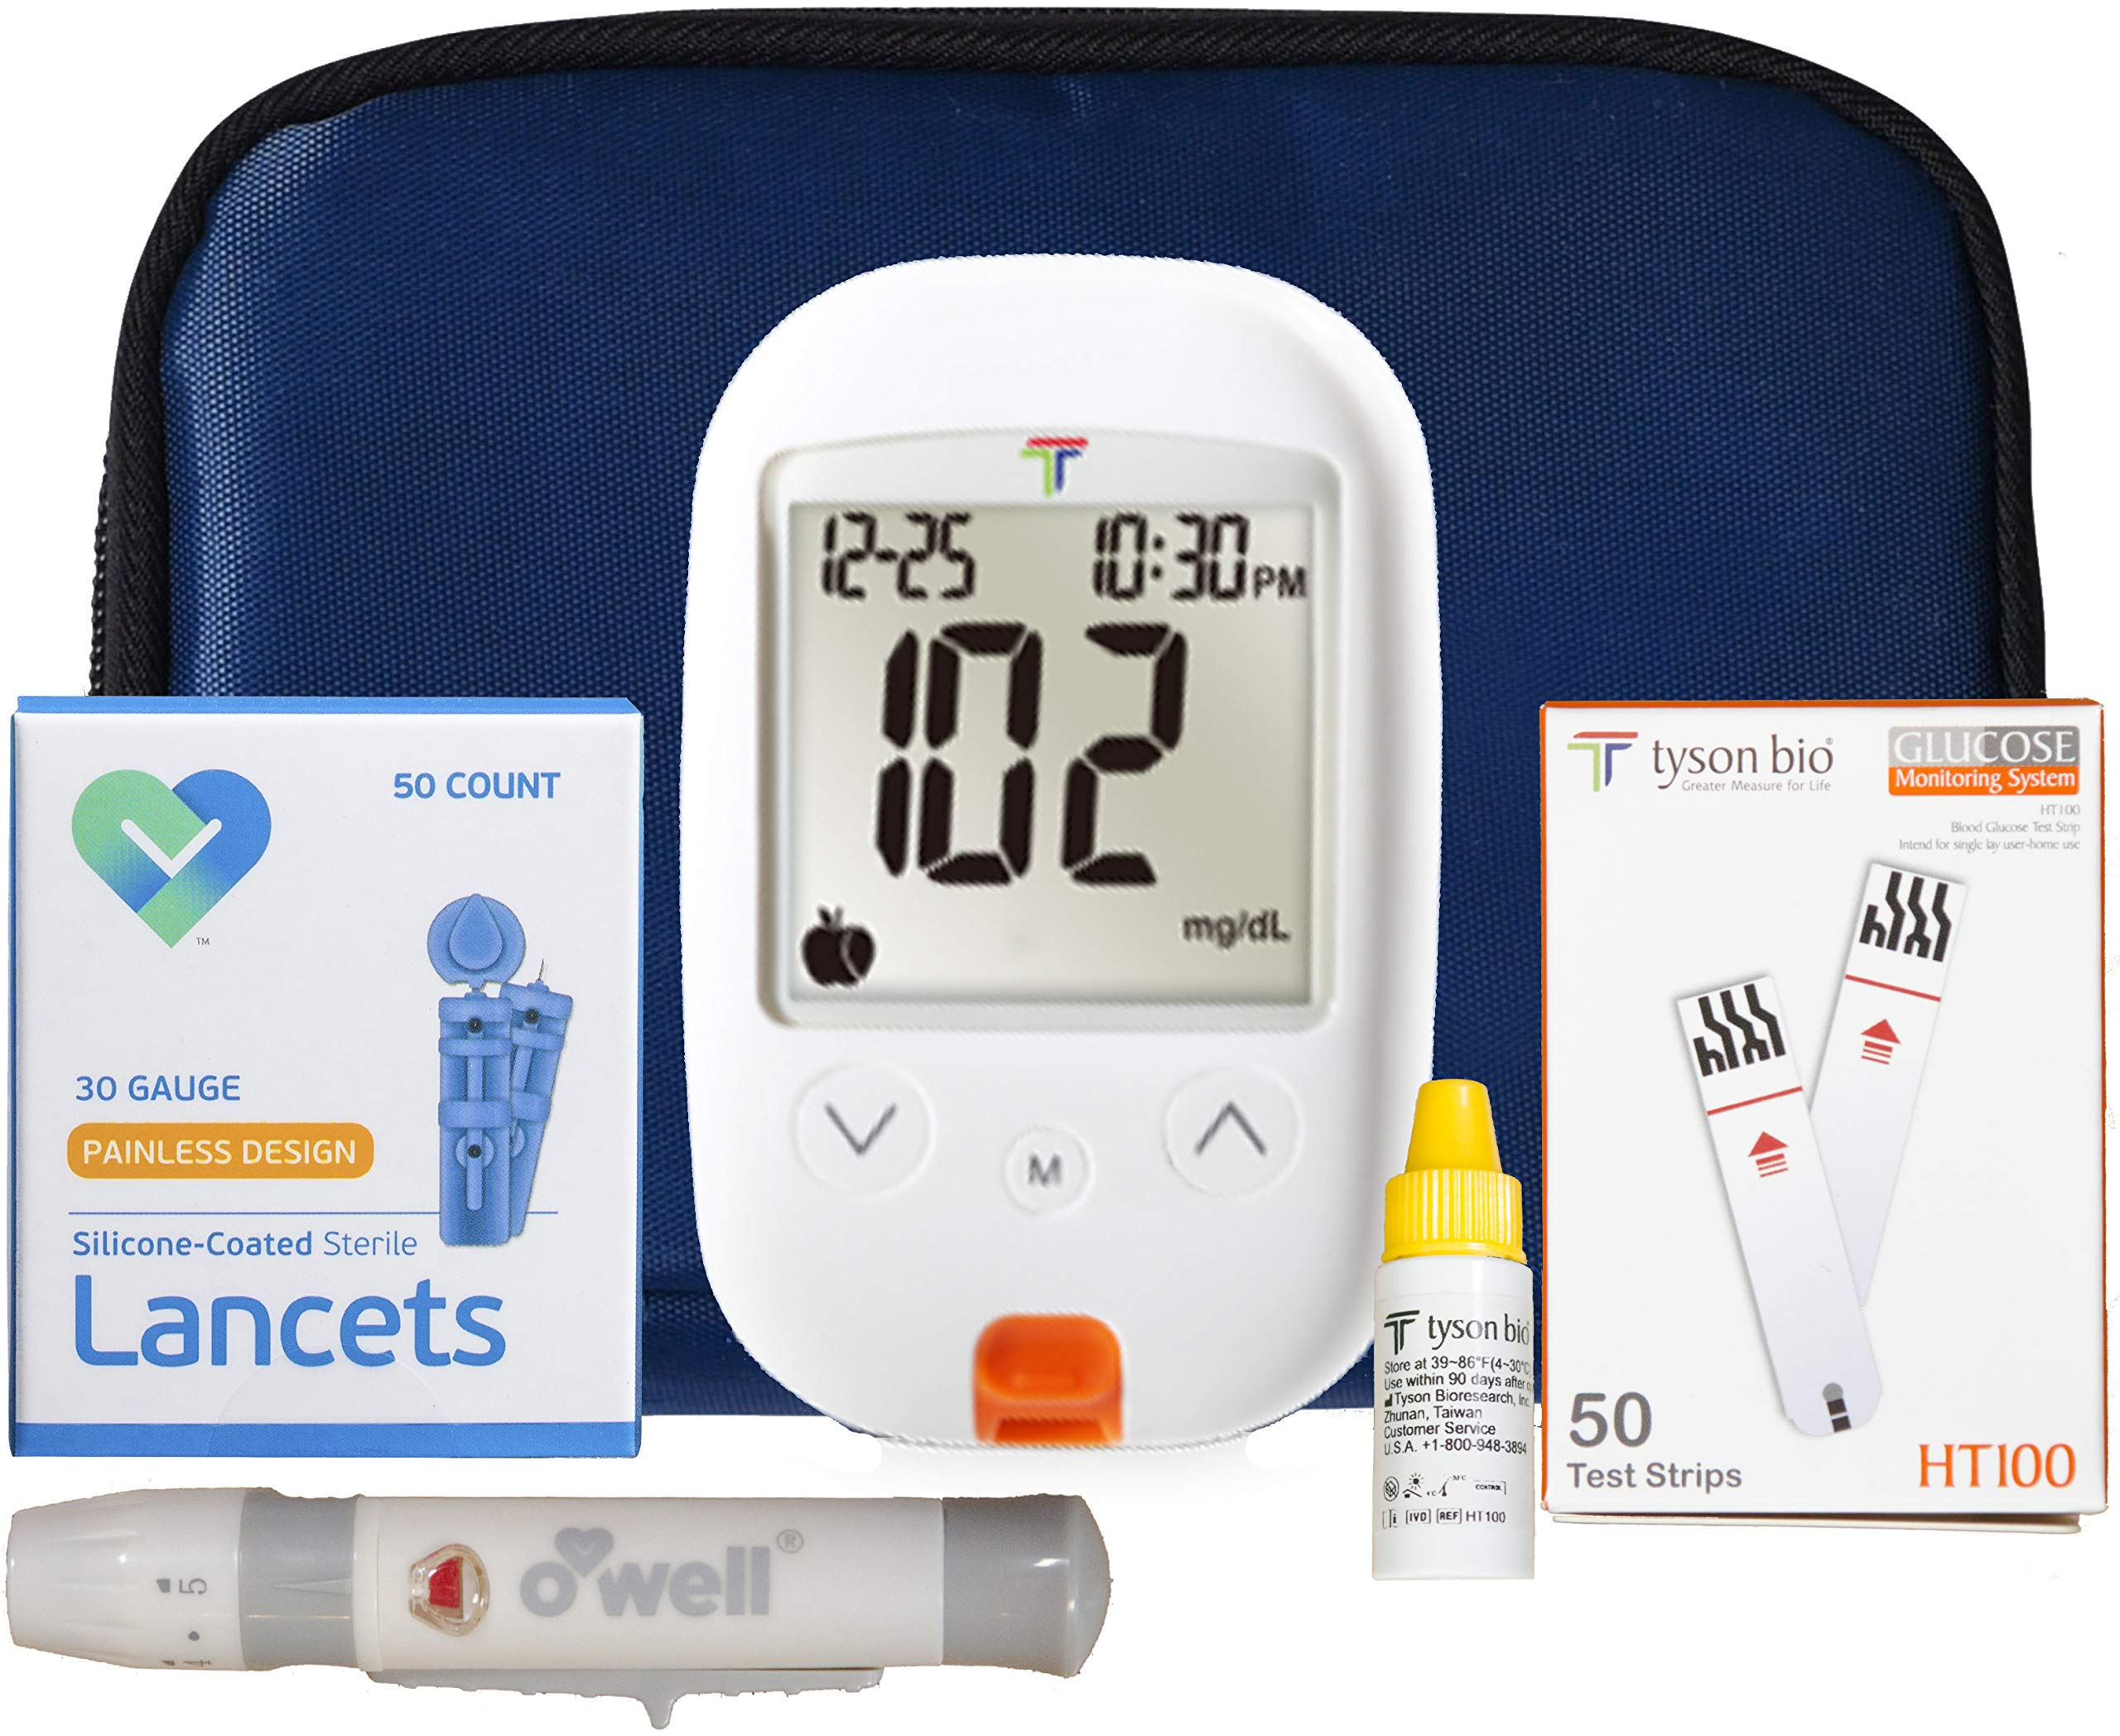 O'WELL Tyson Blood Glucose Monitoring Kit | Starter Kit + 50 Refills | Tyson HT100 Meter, 50 Test Strips, 50 Lancets, Lancing Device, Control Solution, Log Book, Manual and Carry Case product image